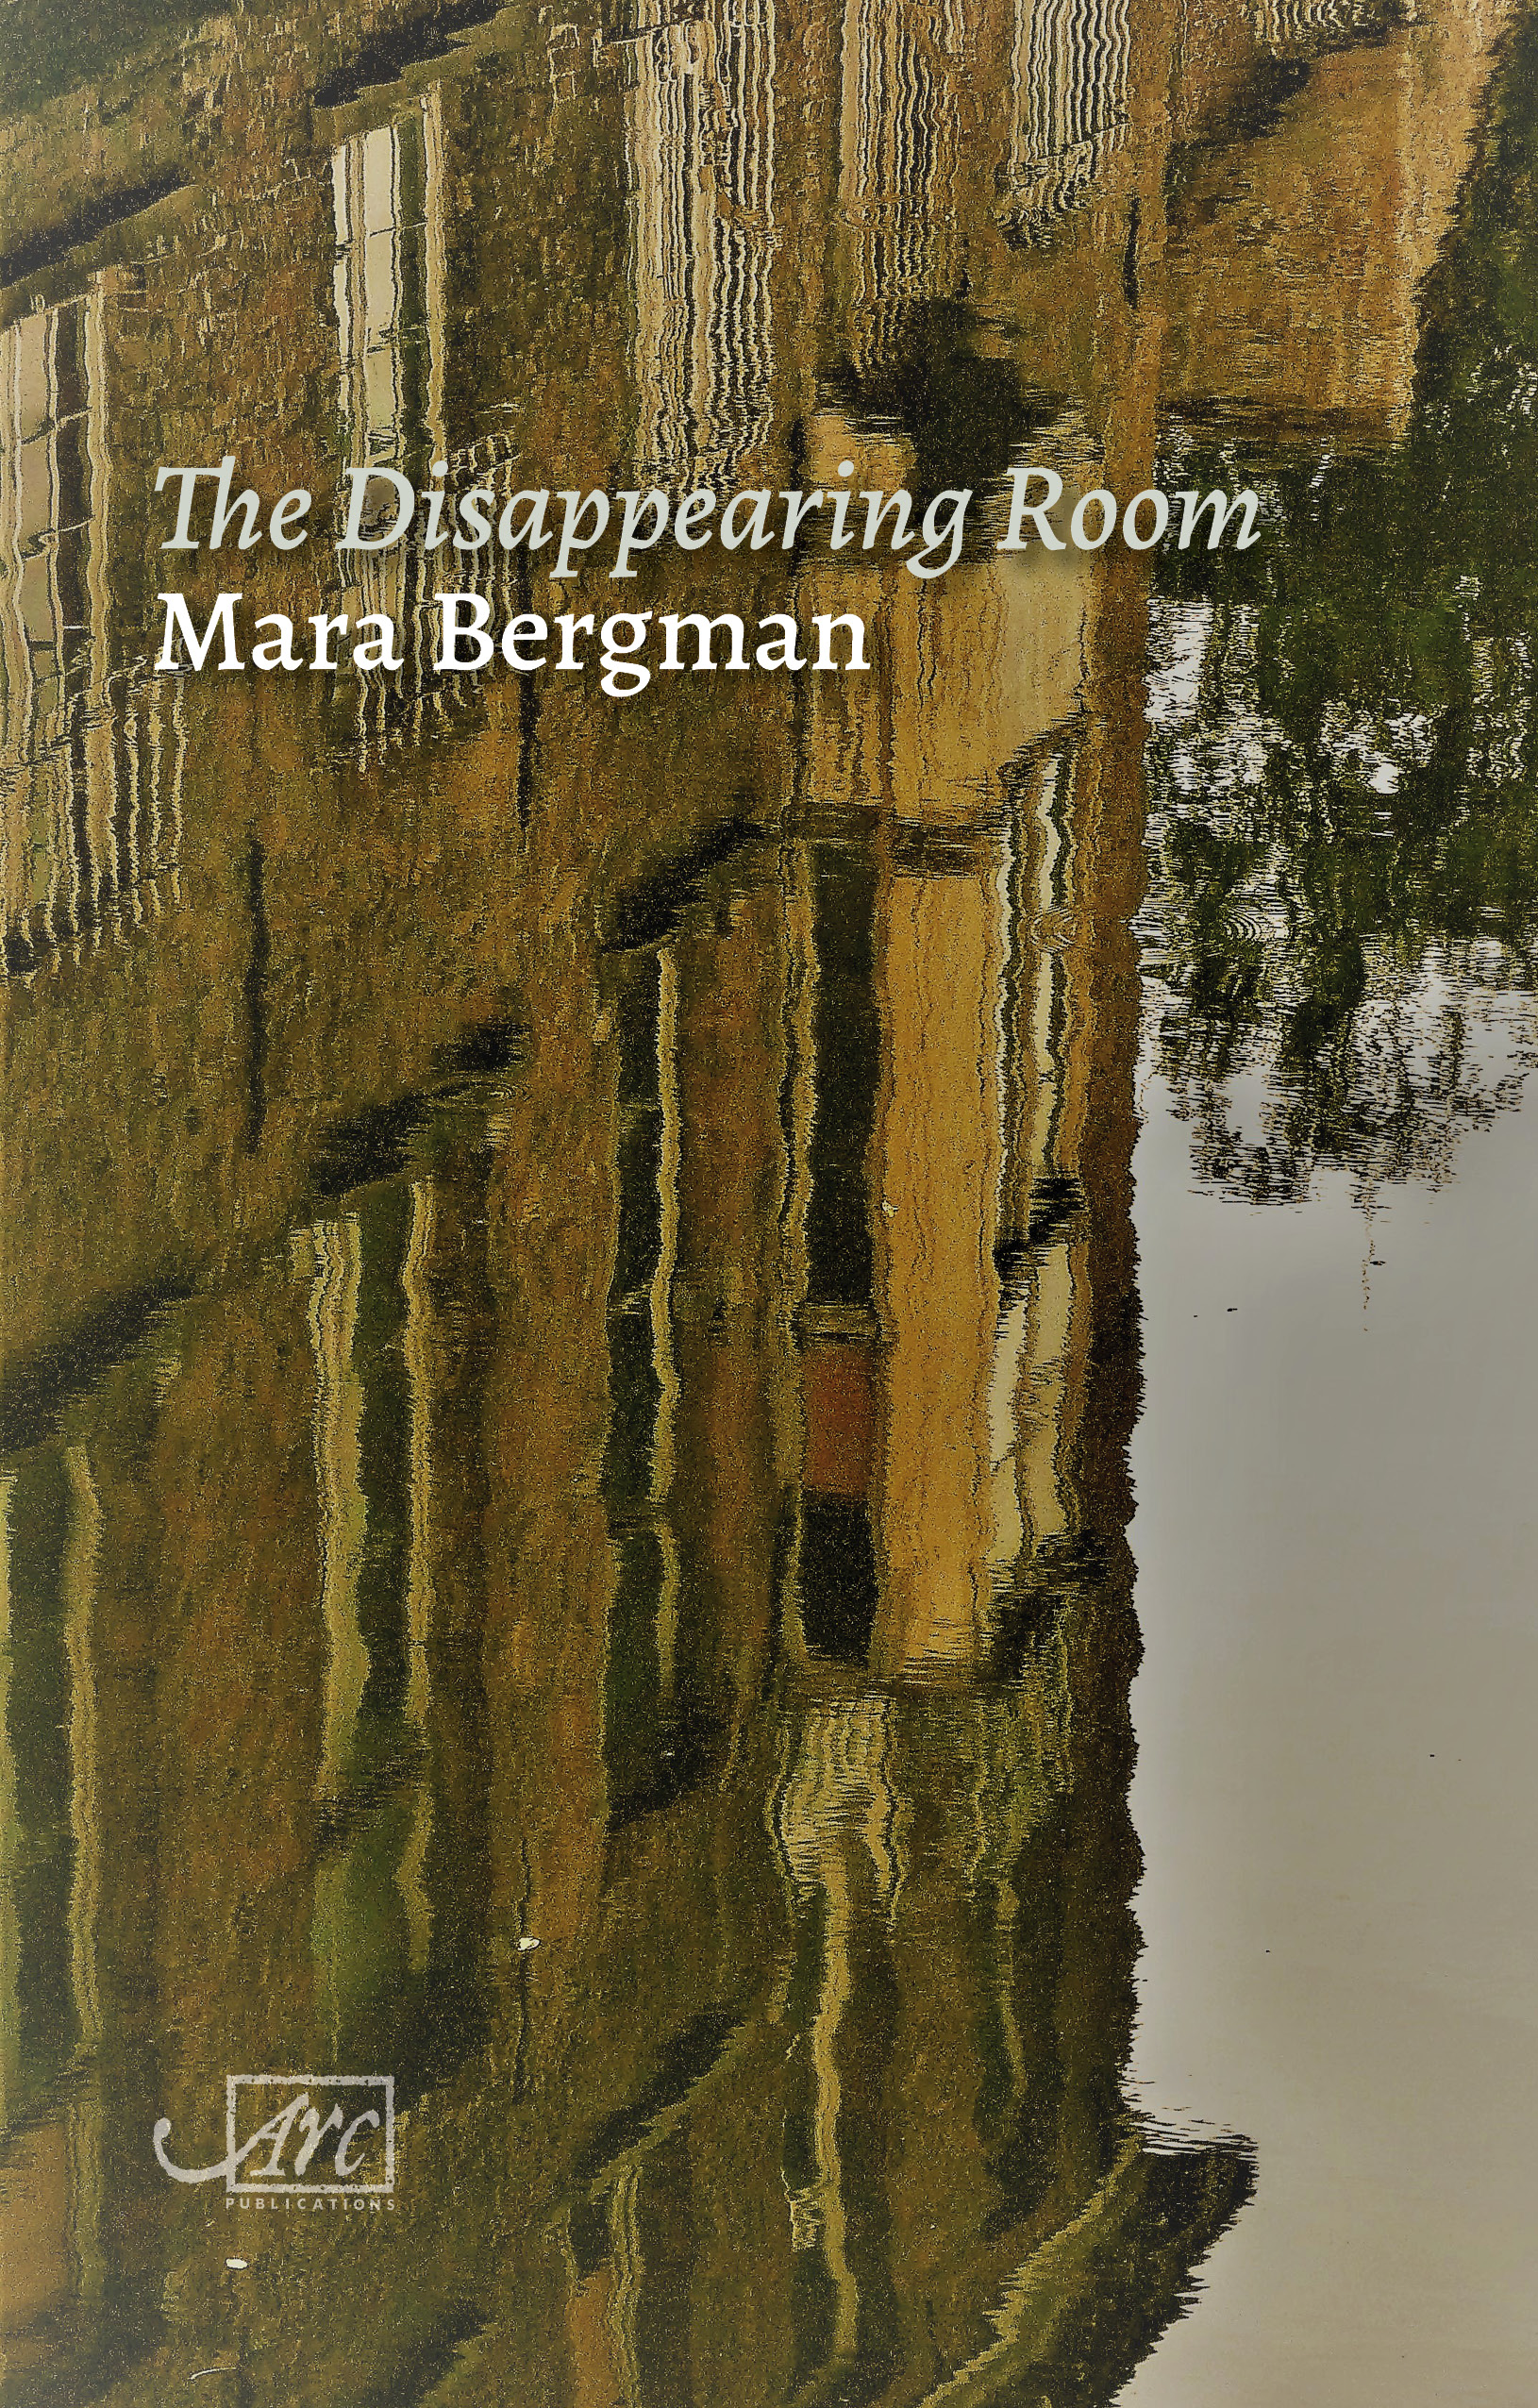 [The Disappearing Room]